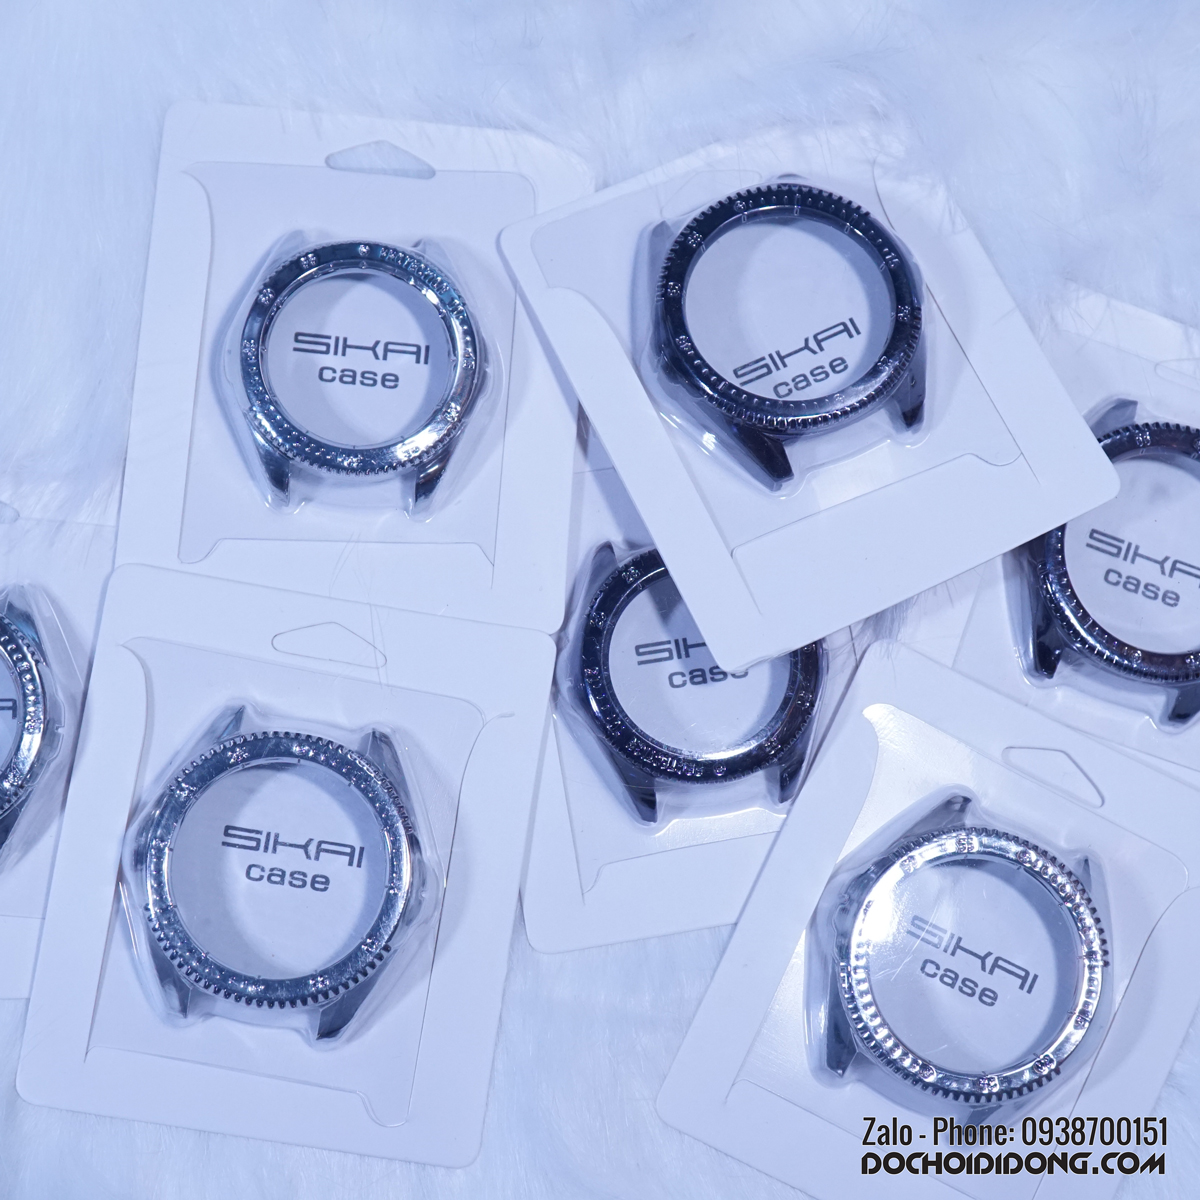 op-bao-ve-dong-ho-huawei-watch-gt-honor-watch-magic-sikai-nhua-cung-son-ma-kim-loai